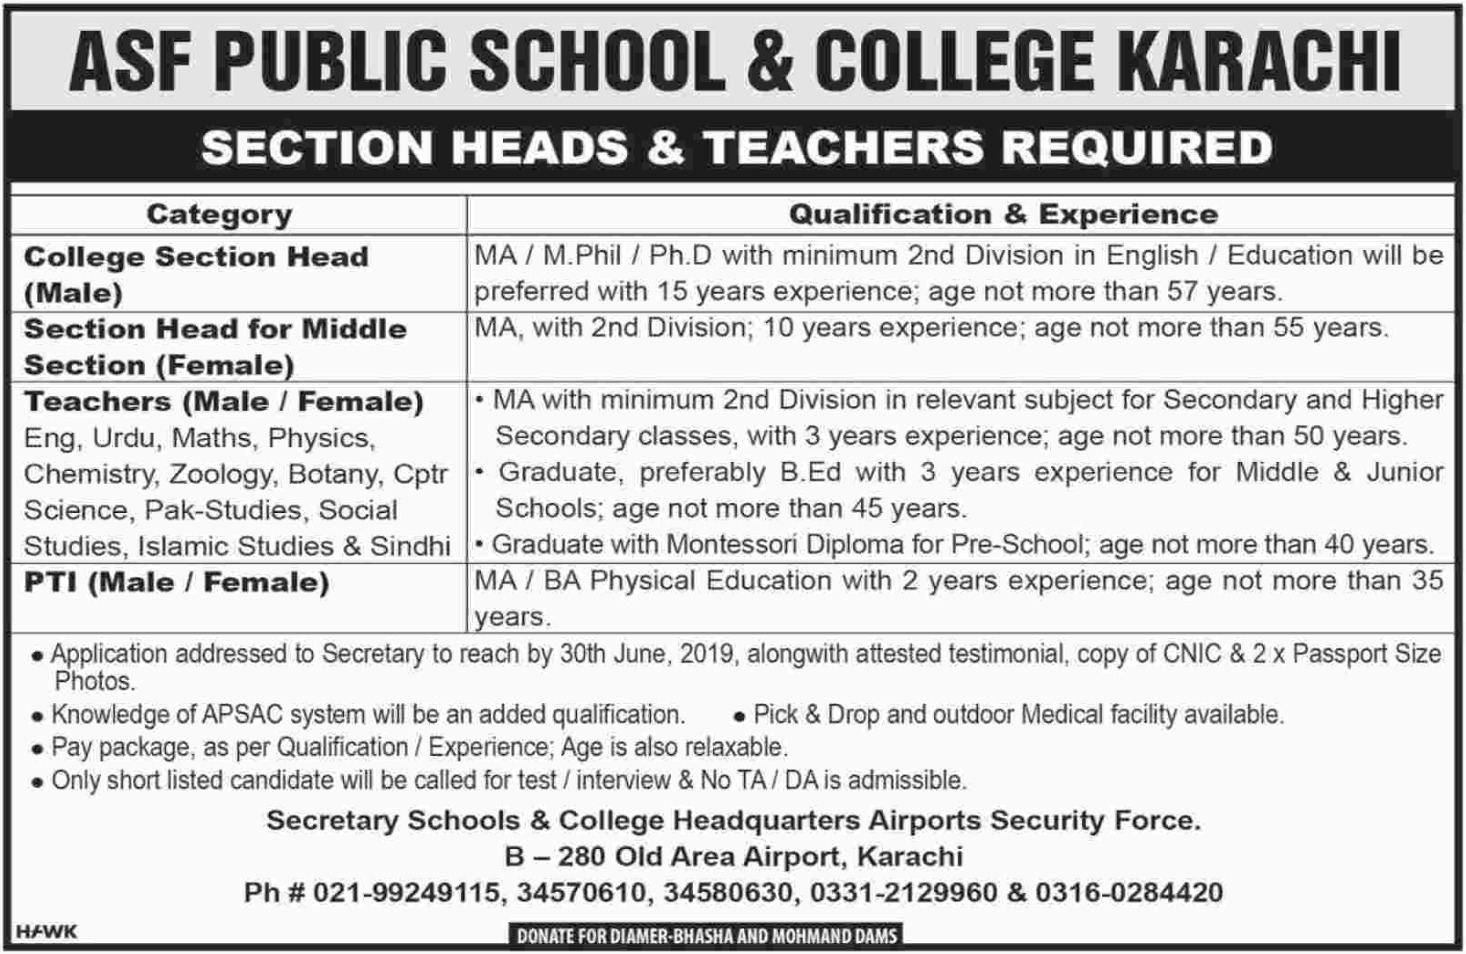 ASF Public School & College Karachi Jobs 2019